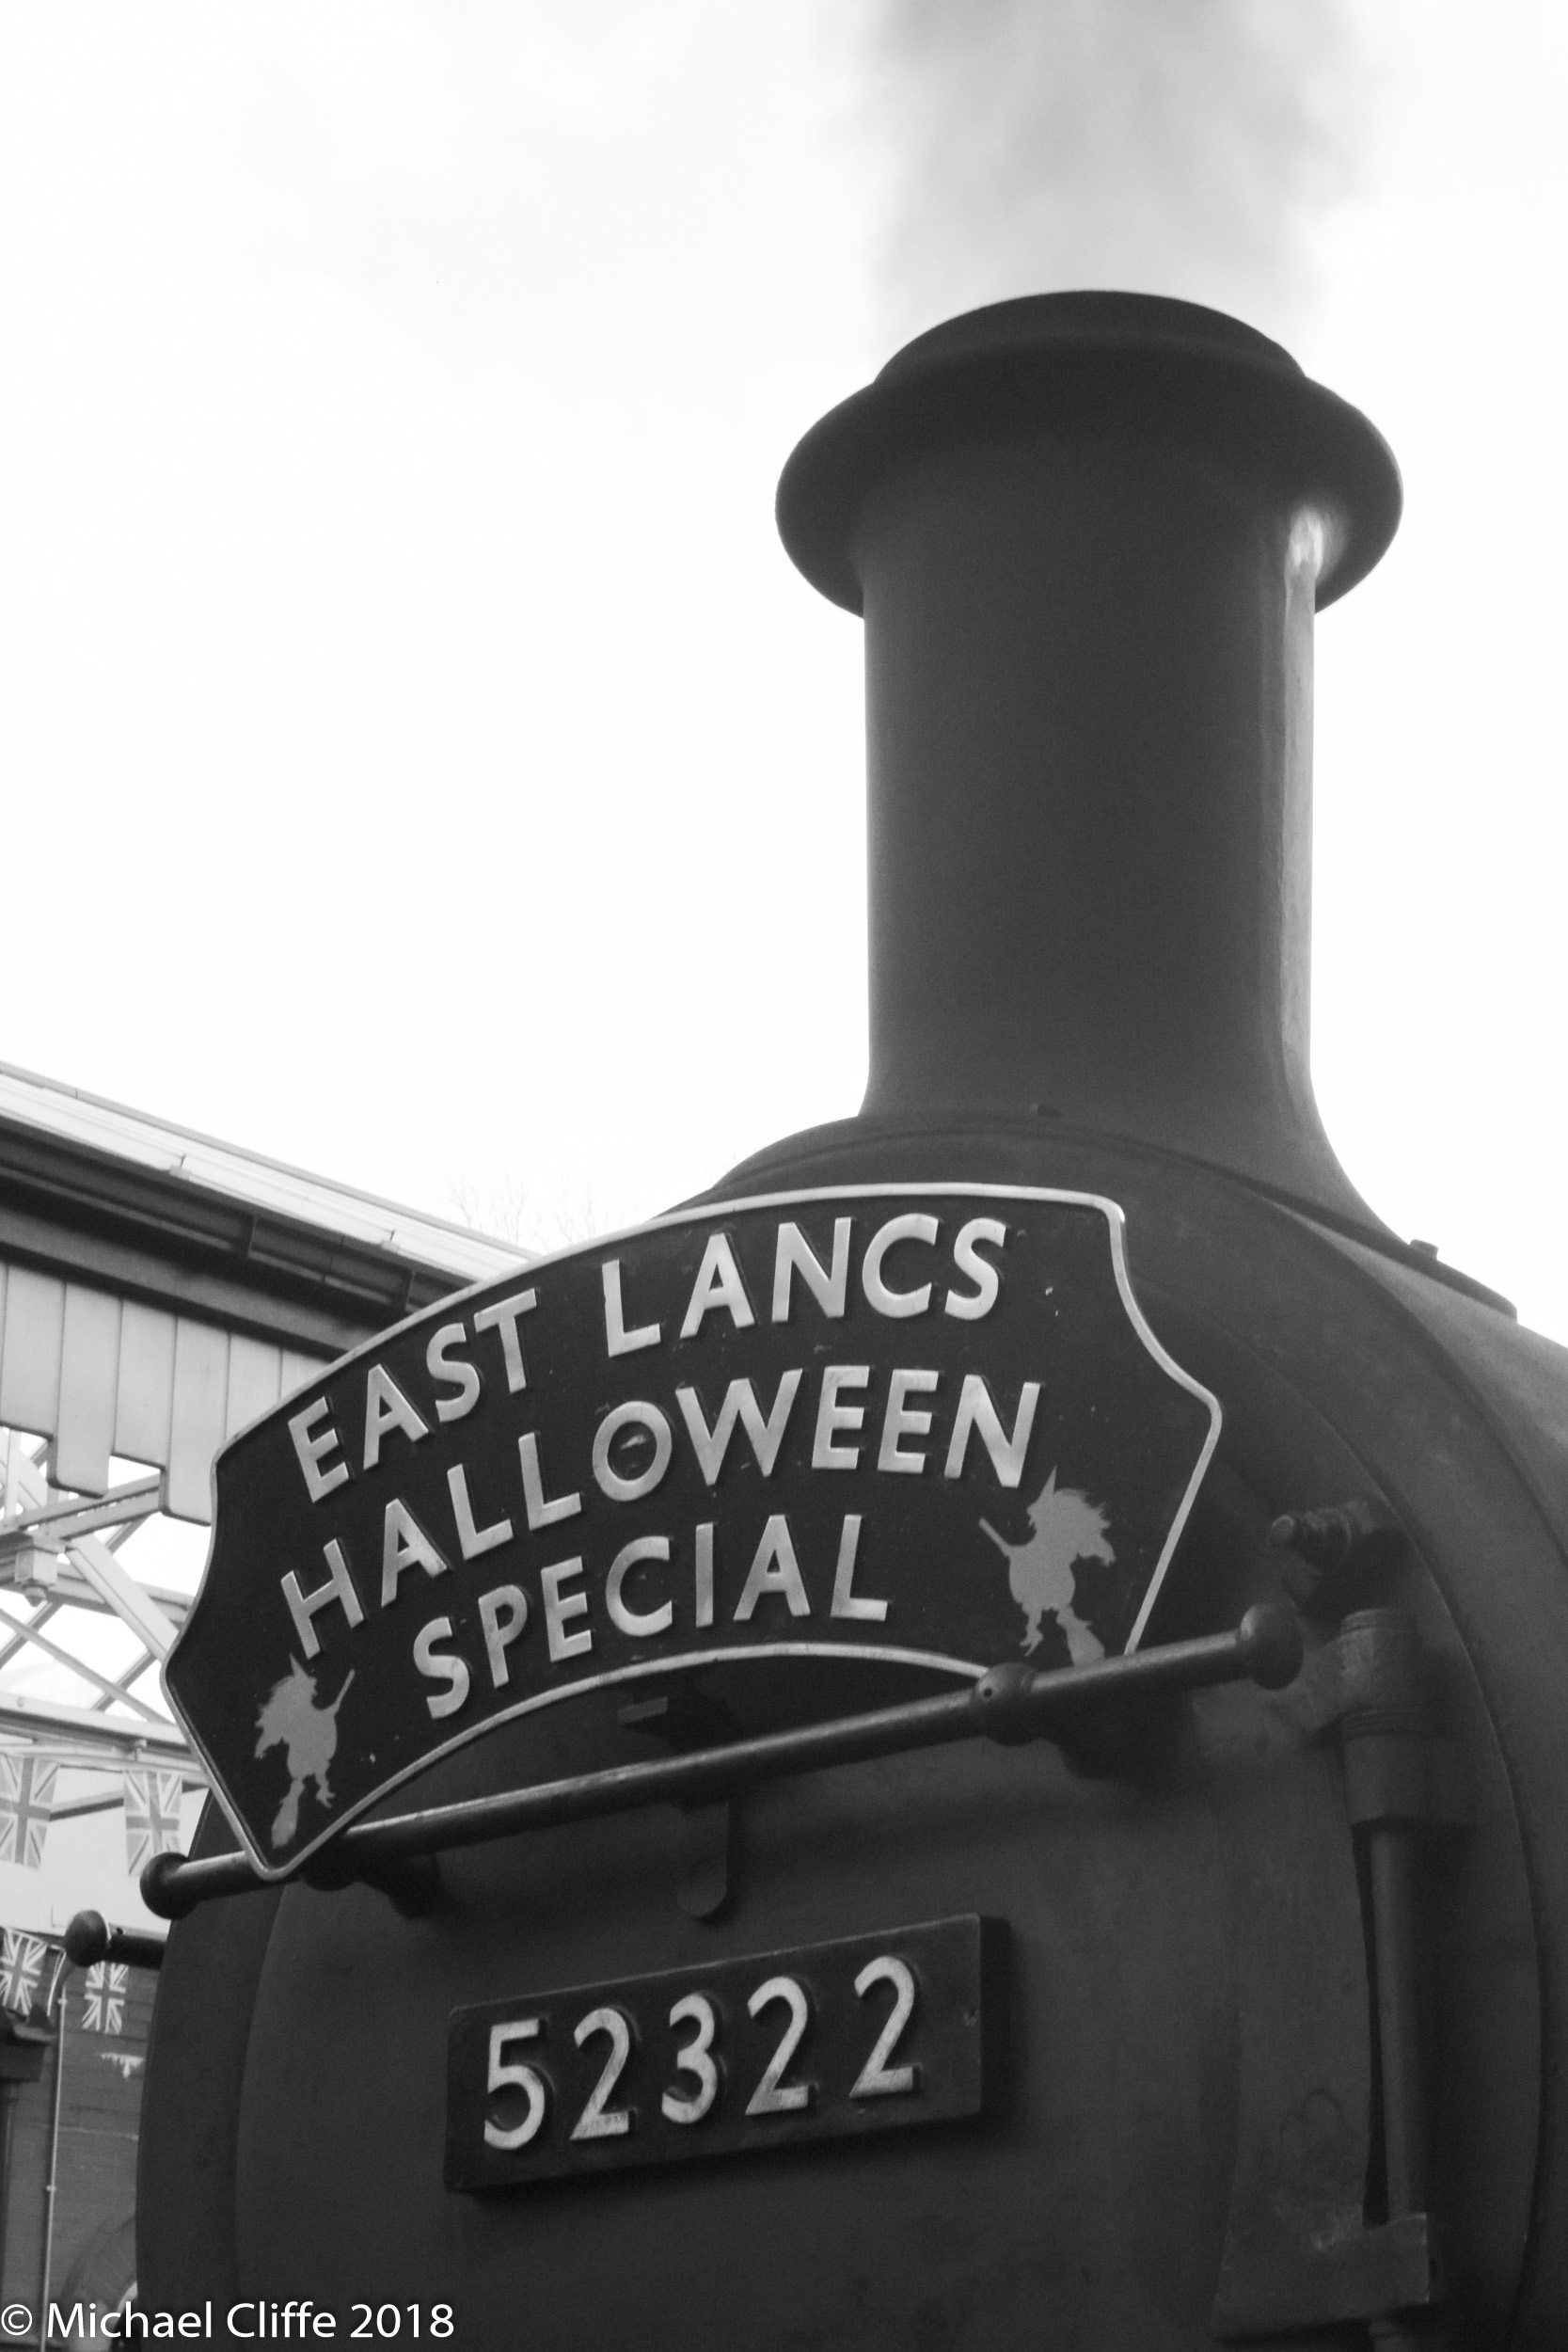 East Lancashire Halloween Special Bury (1 of 22).jpg